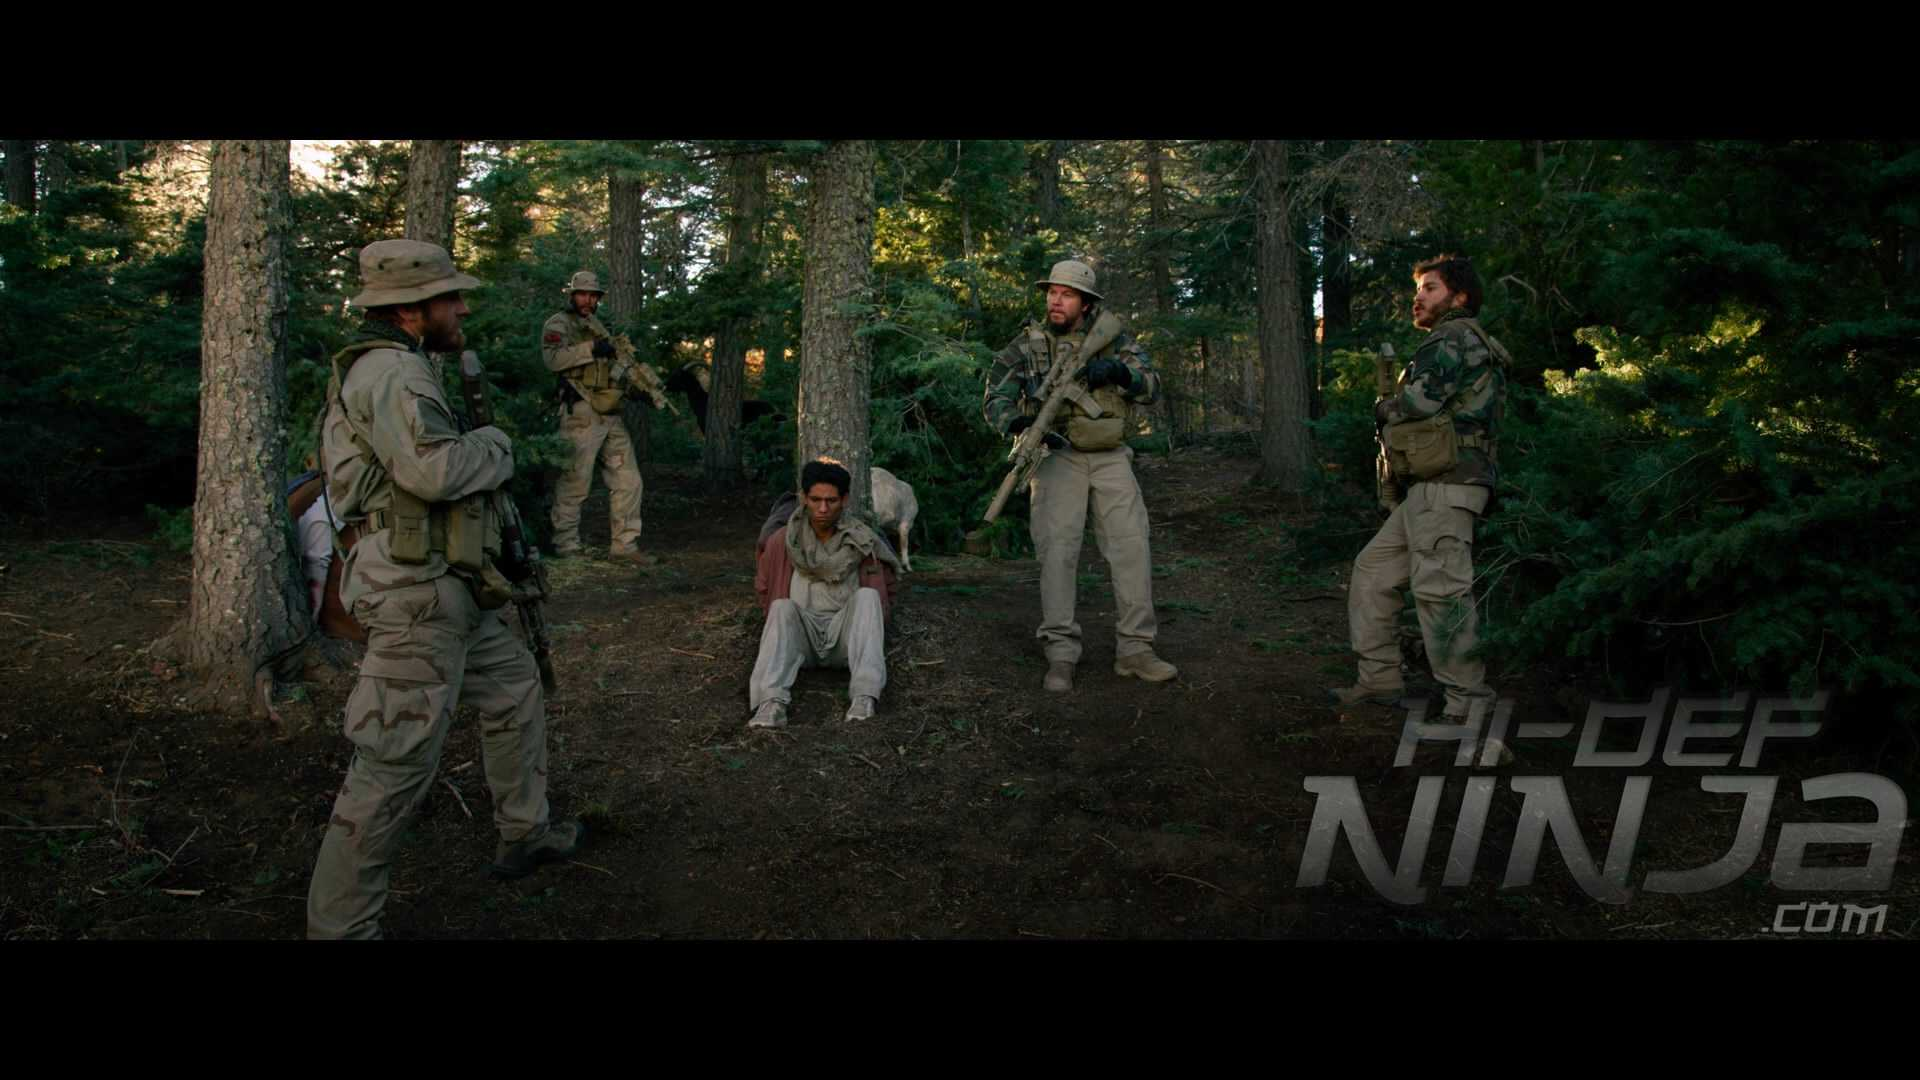 LoneSurvivor-5